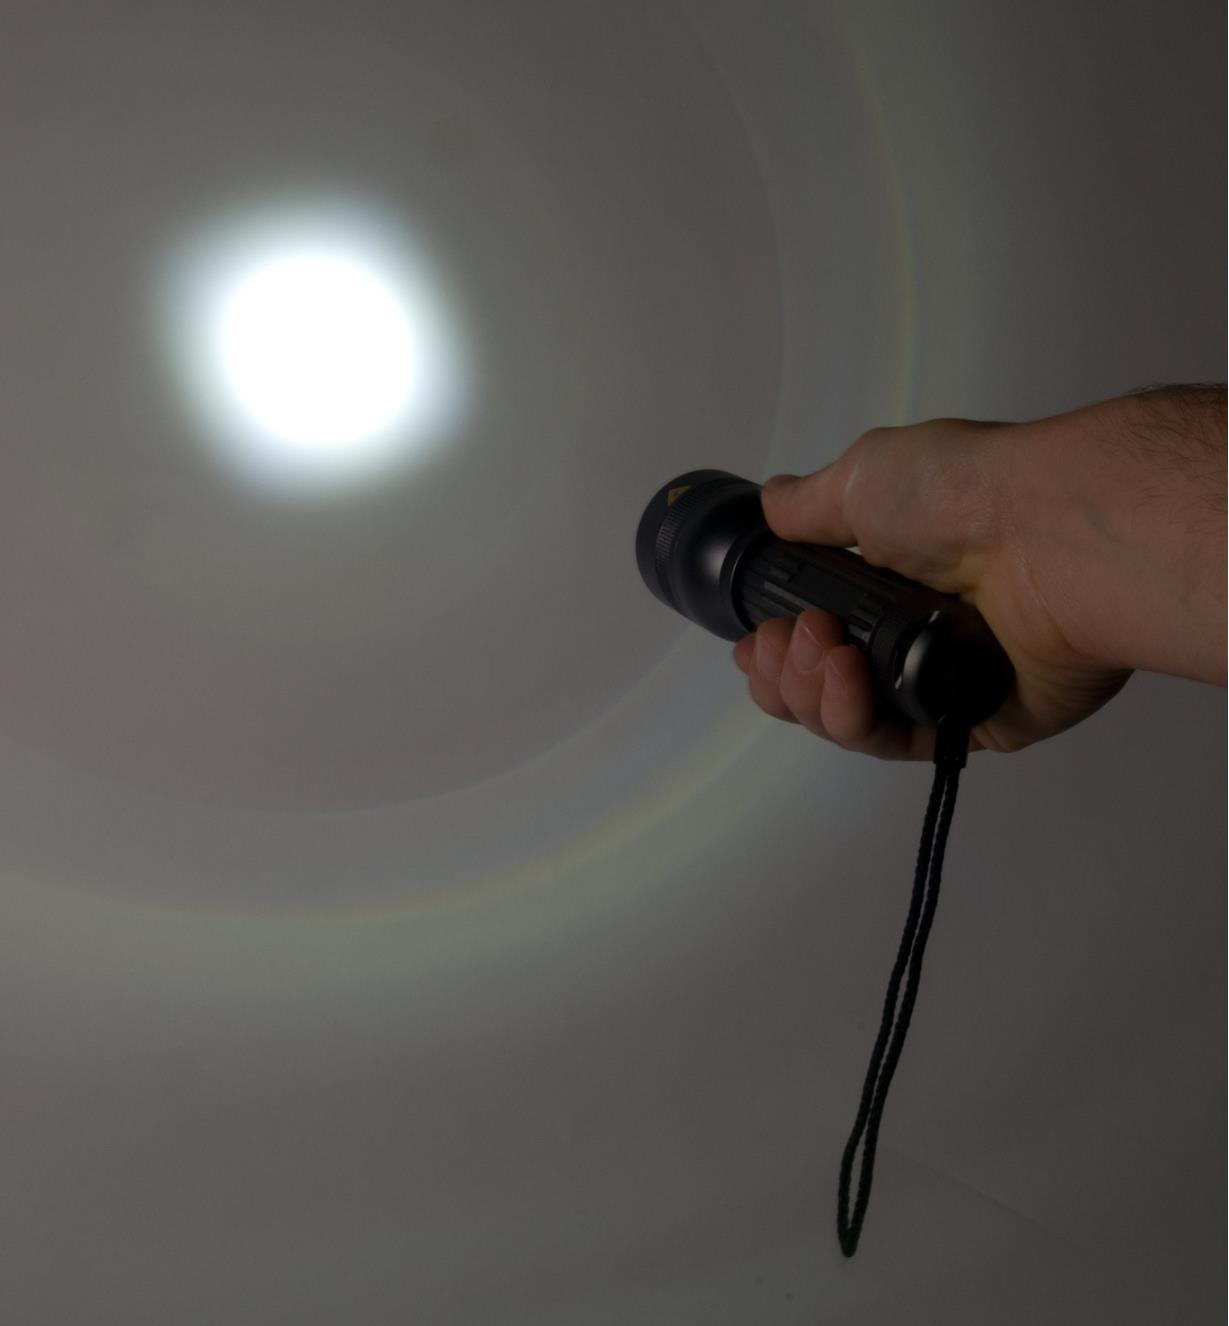 Flashlight shines a narrow spotlight on a wall